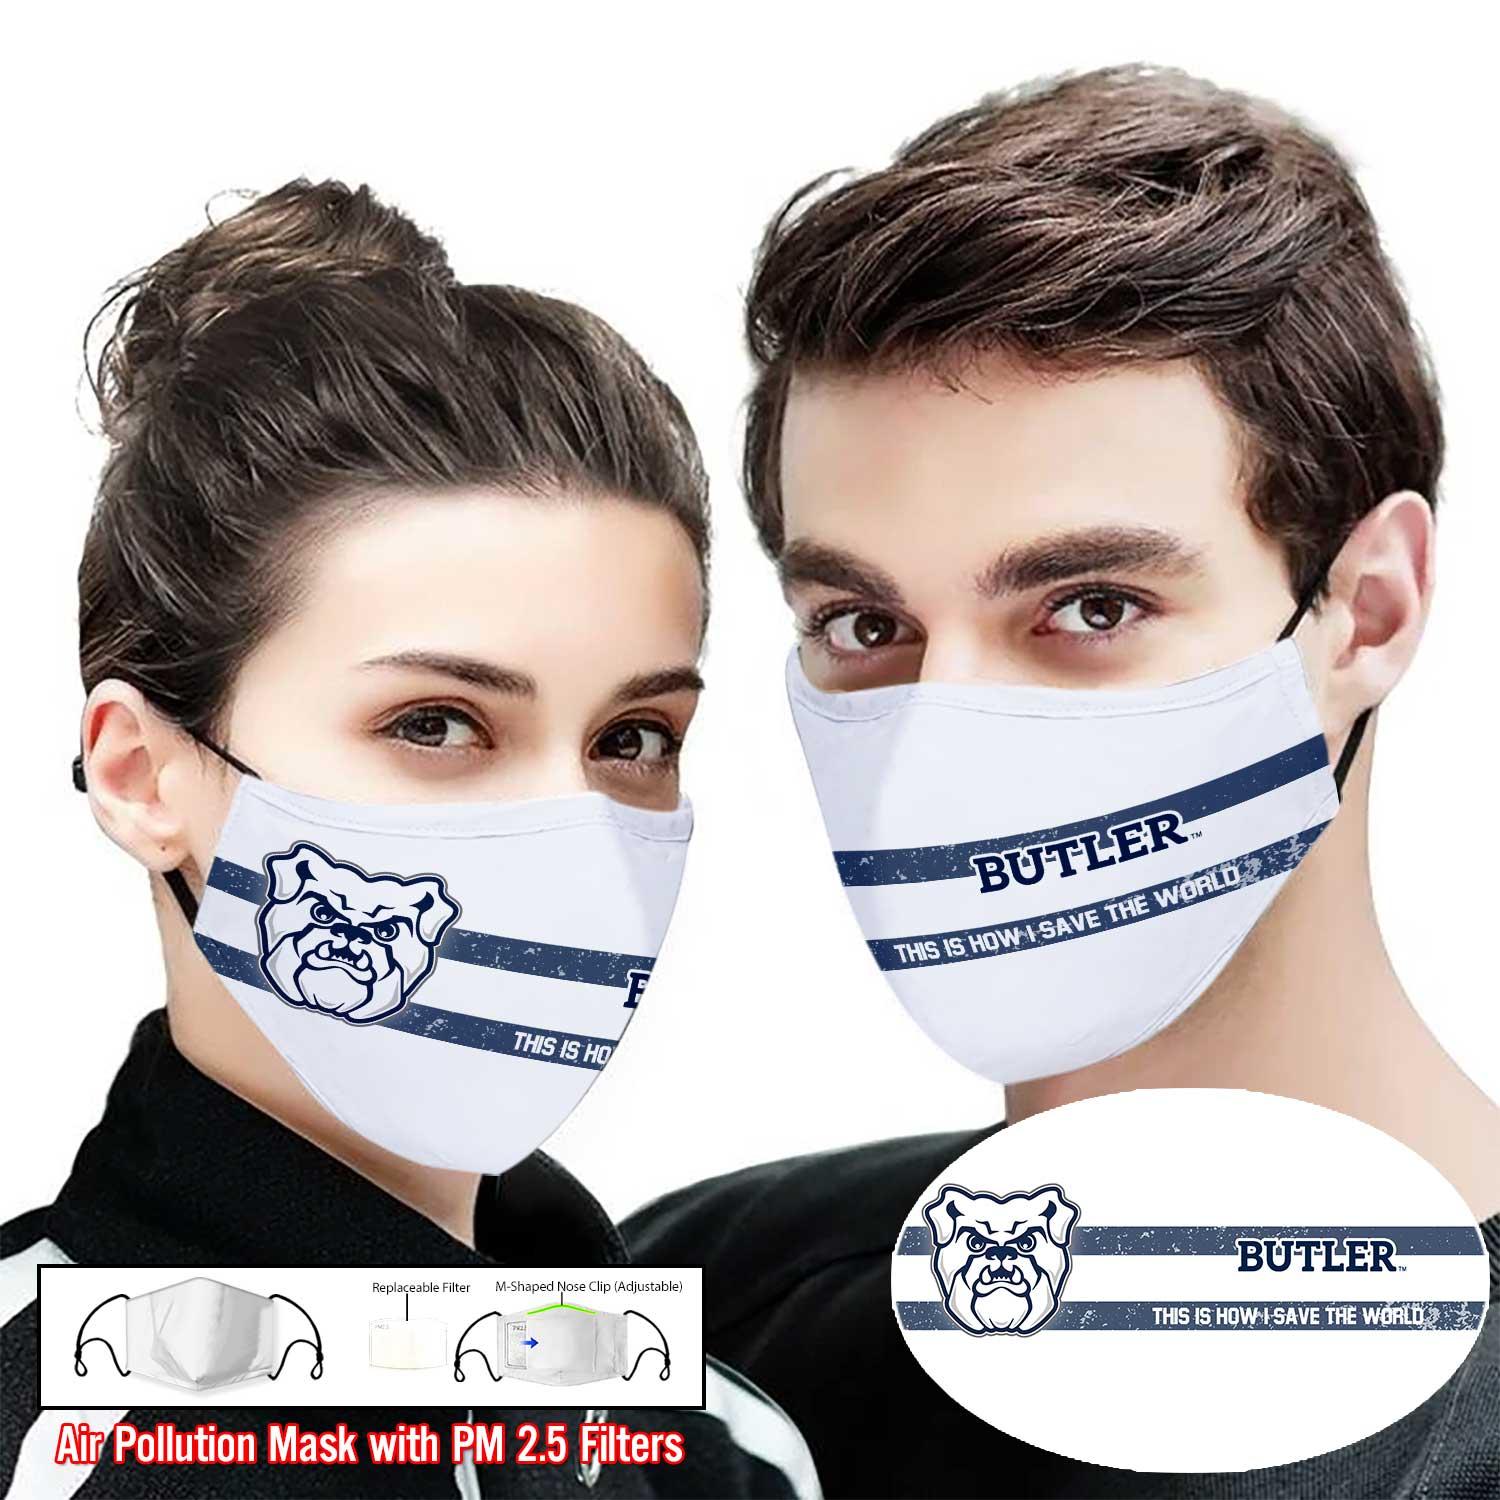 Butler bulldogs this is how i save the world face mask 2